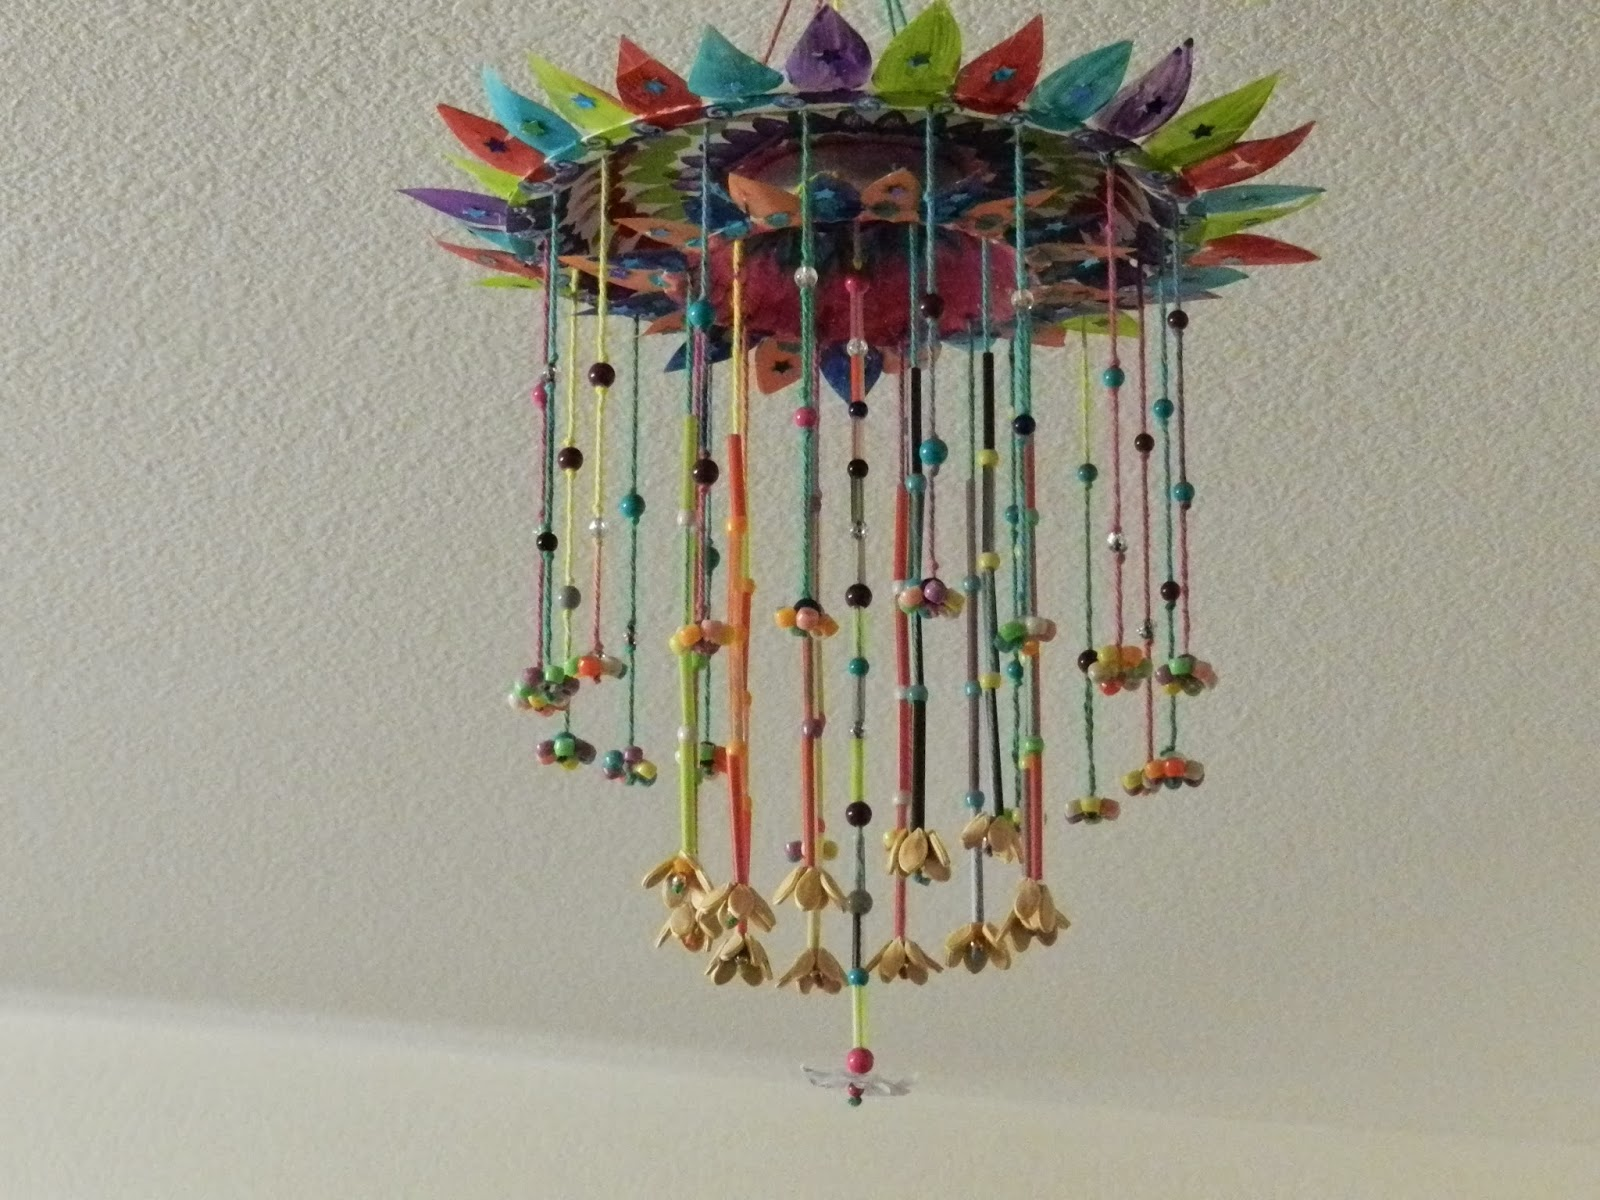 Creative diy crafts paper plate hanging craft with beads for Creative things out of waste